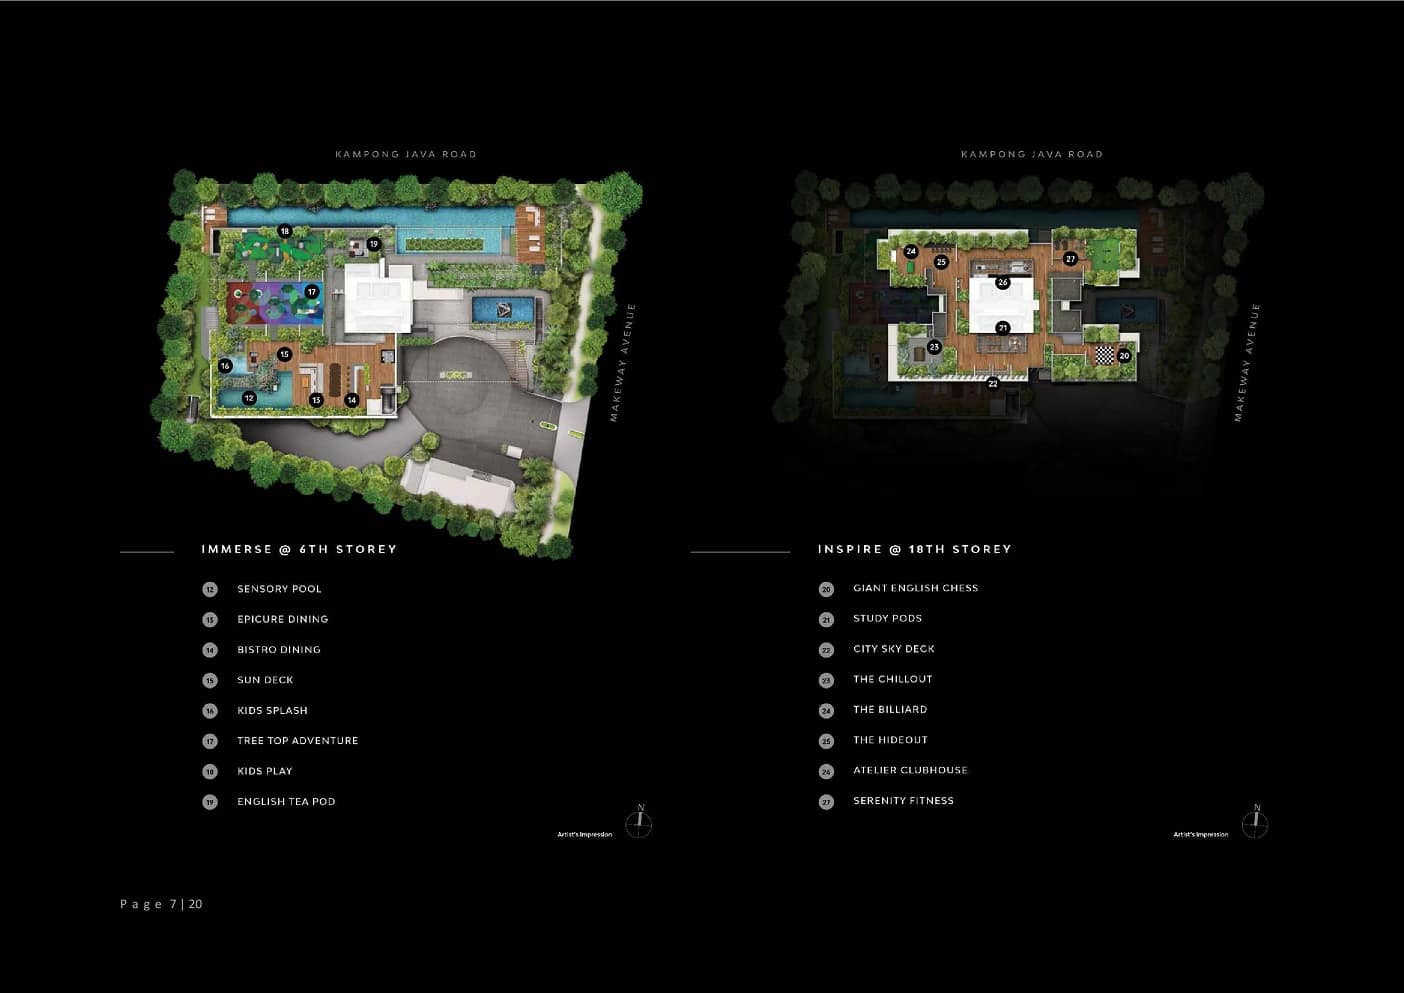 The Atelier - Facility Plan